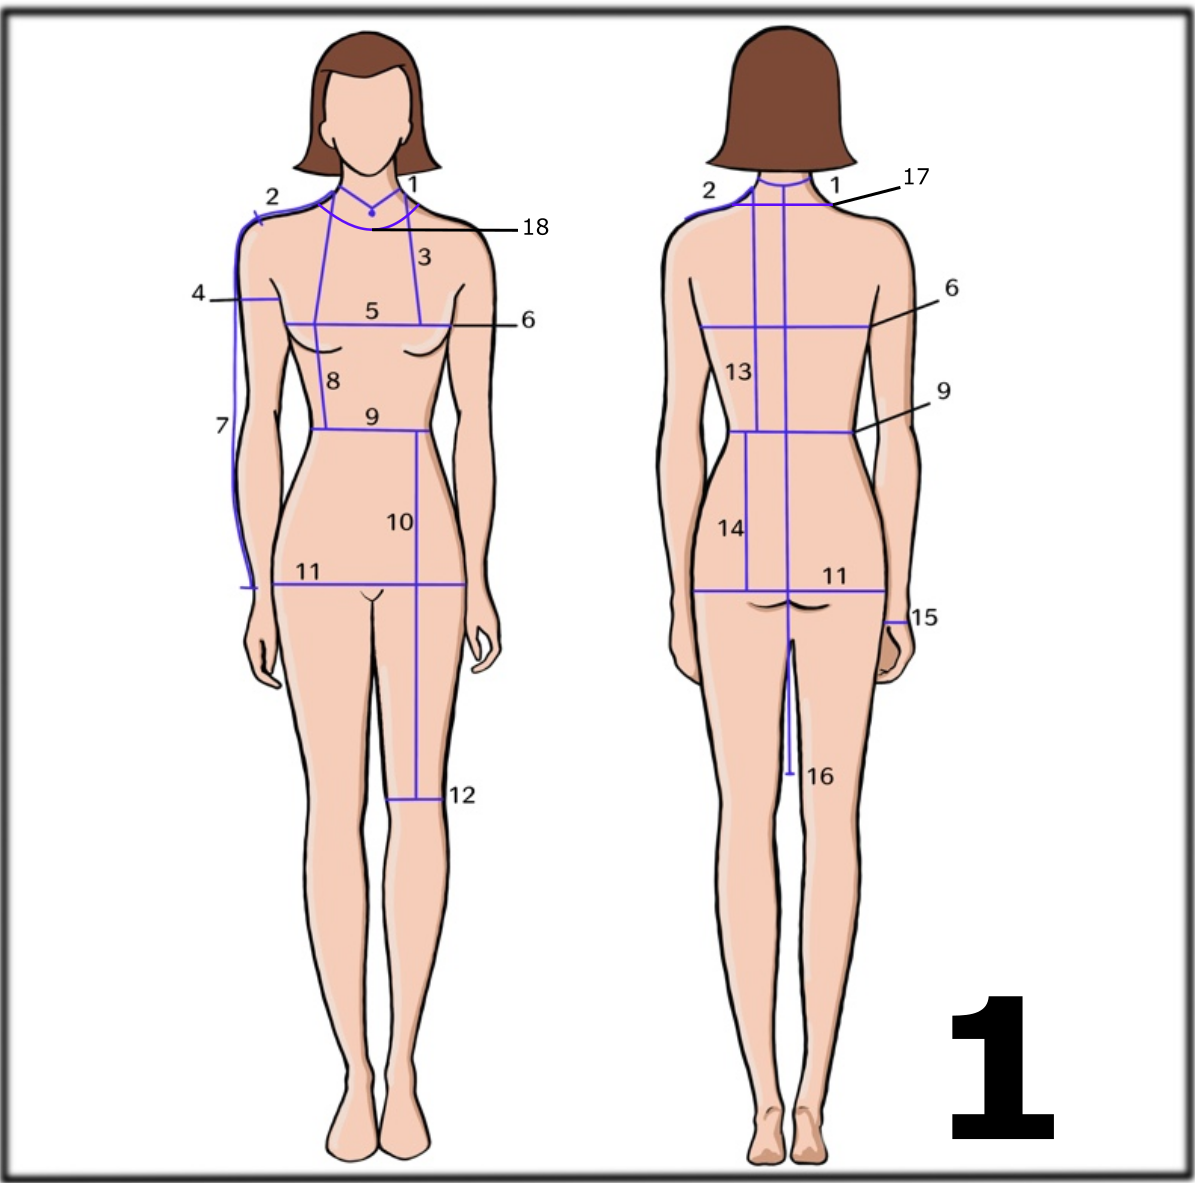 HOW TO TAKE MEASUREMENTS pic1